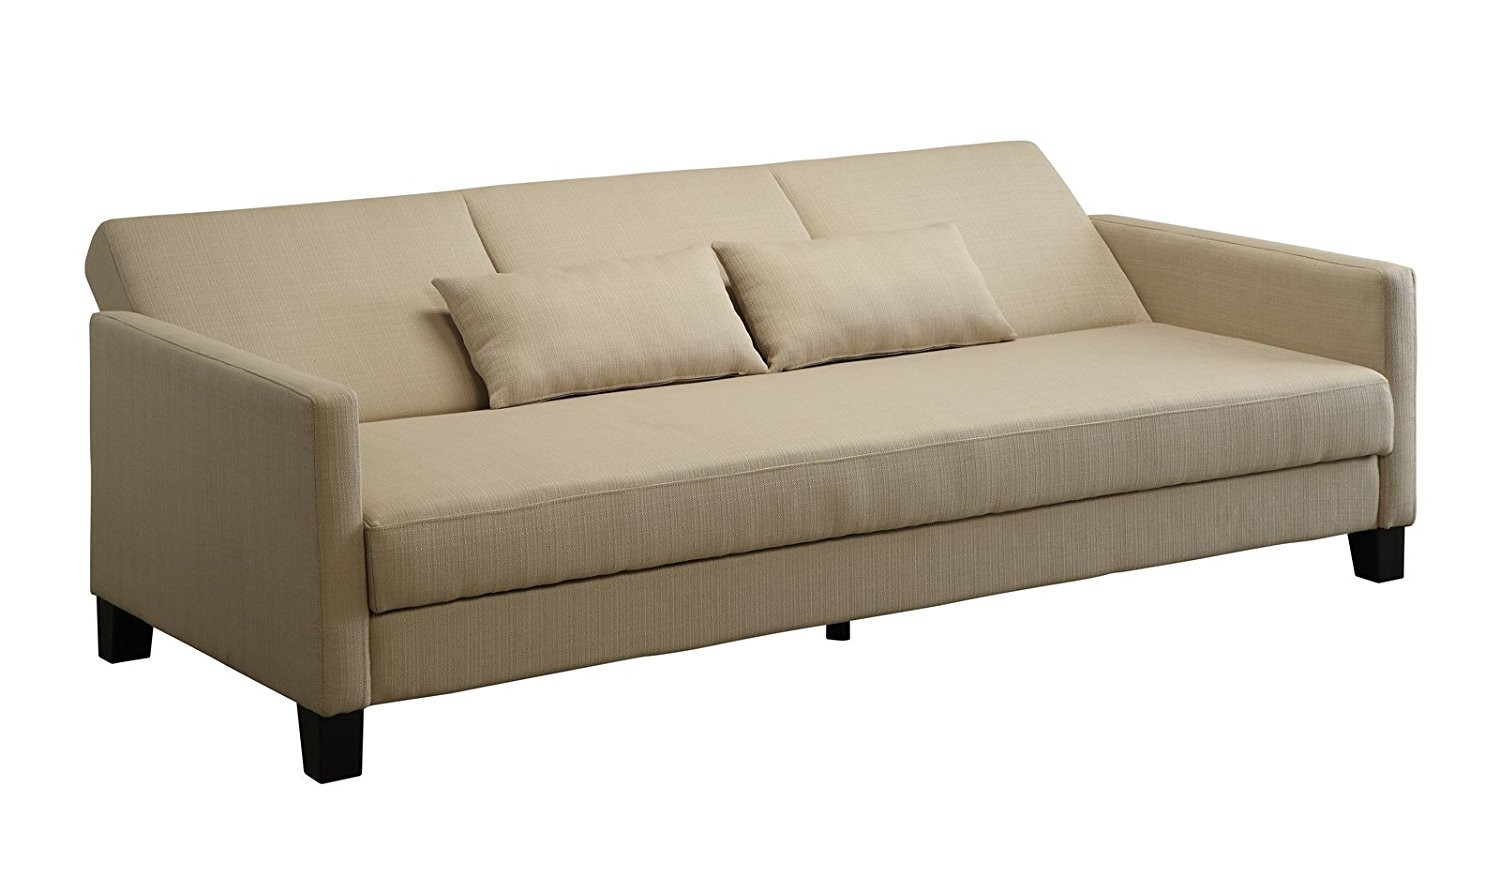 Best ideas about Discount Sleep Sofa . Save or Pin Sofas Twin Sofa Sleeper Sleeper Sofa Cheap Now.